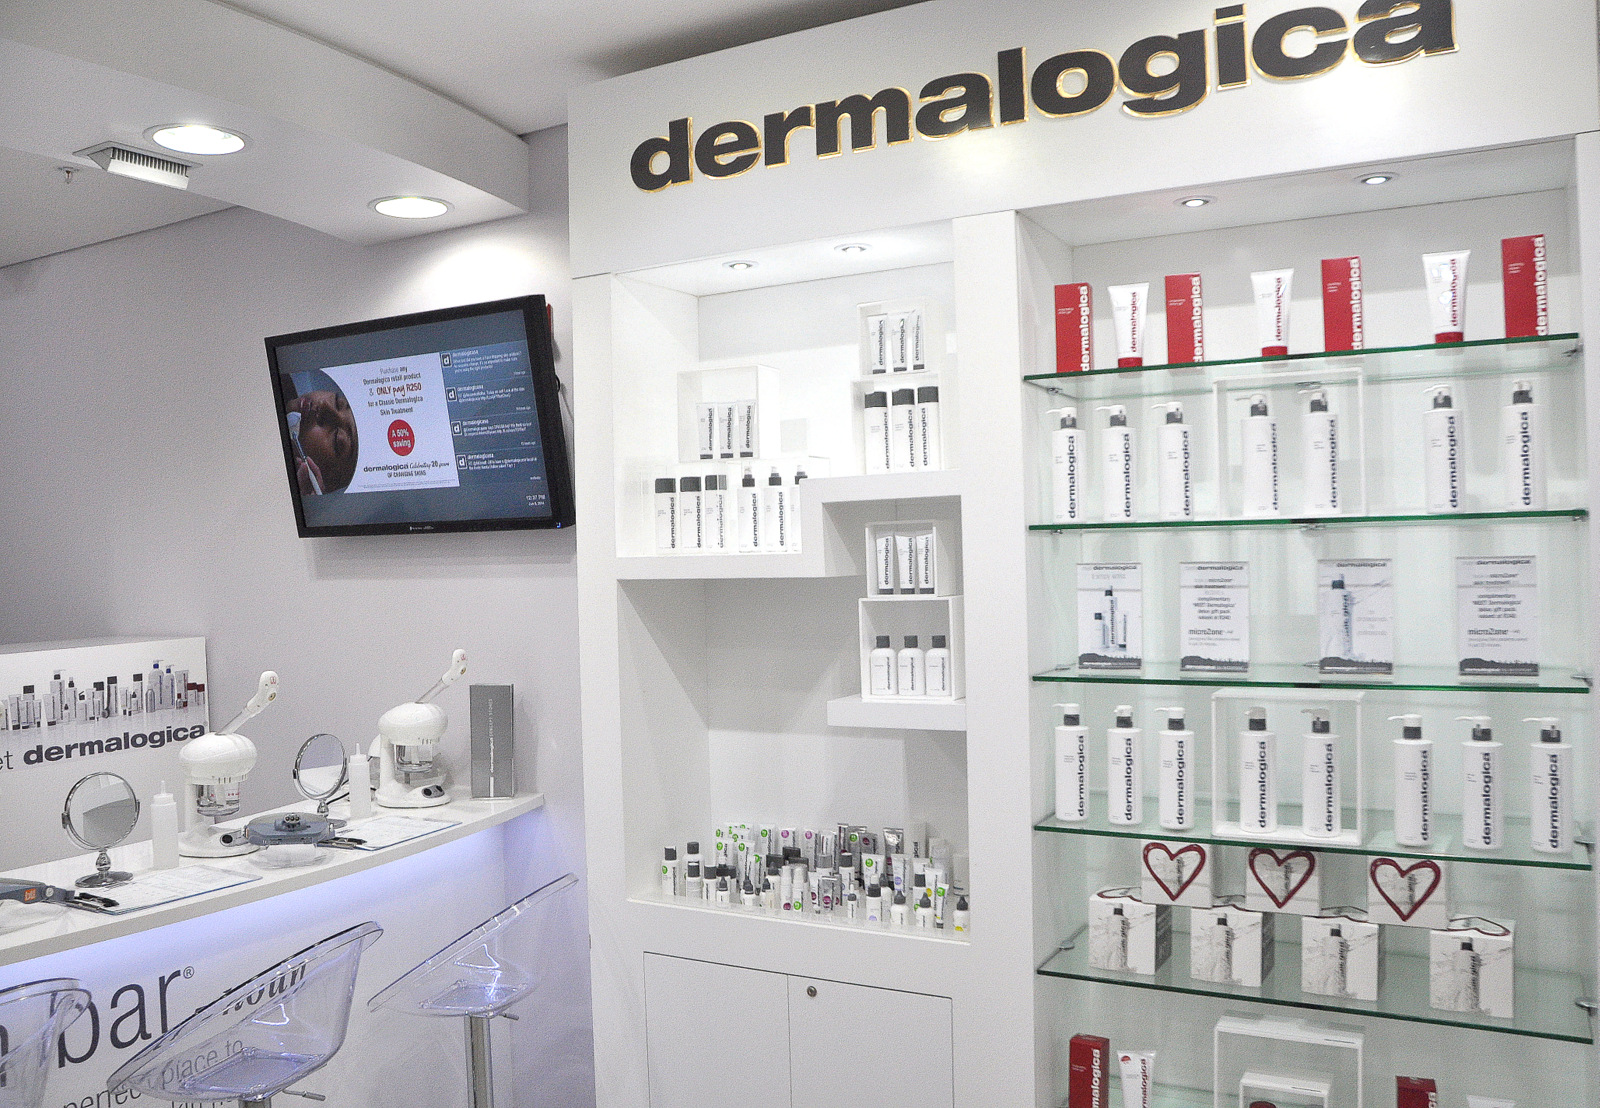 Dermalogica Employs Moving Tactics For New Concept Store